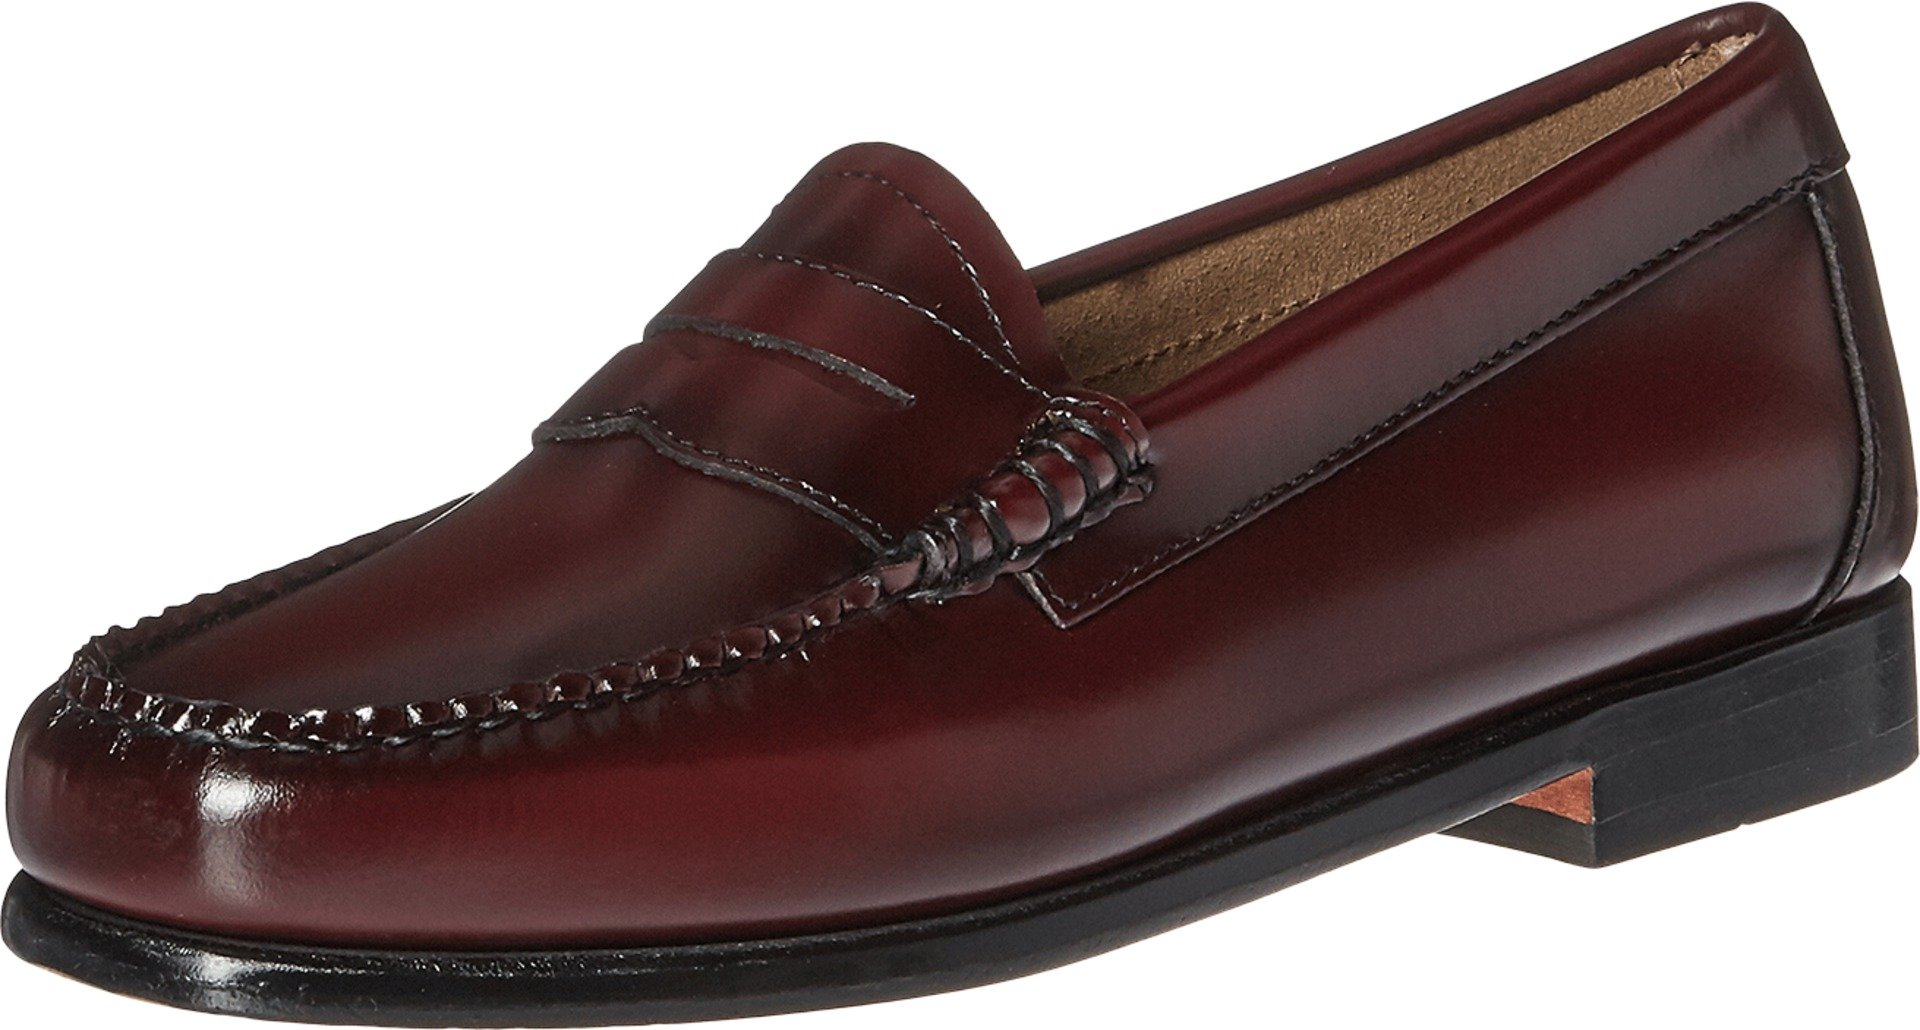 G.H. Bass & Co. Women's Whitney Penny Loafer,Cordovan Box Leather,US 8 W